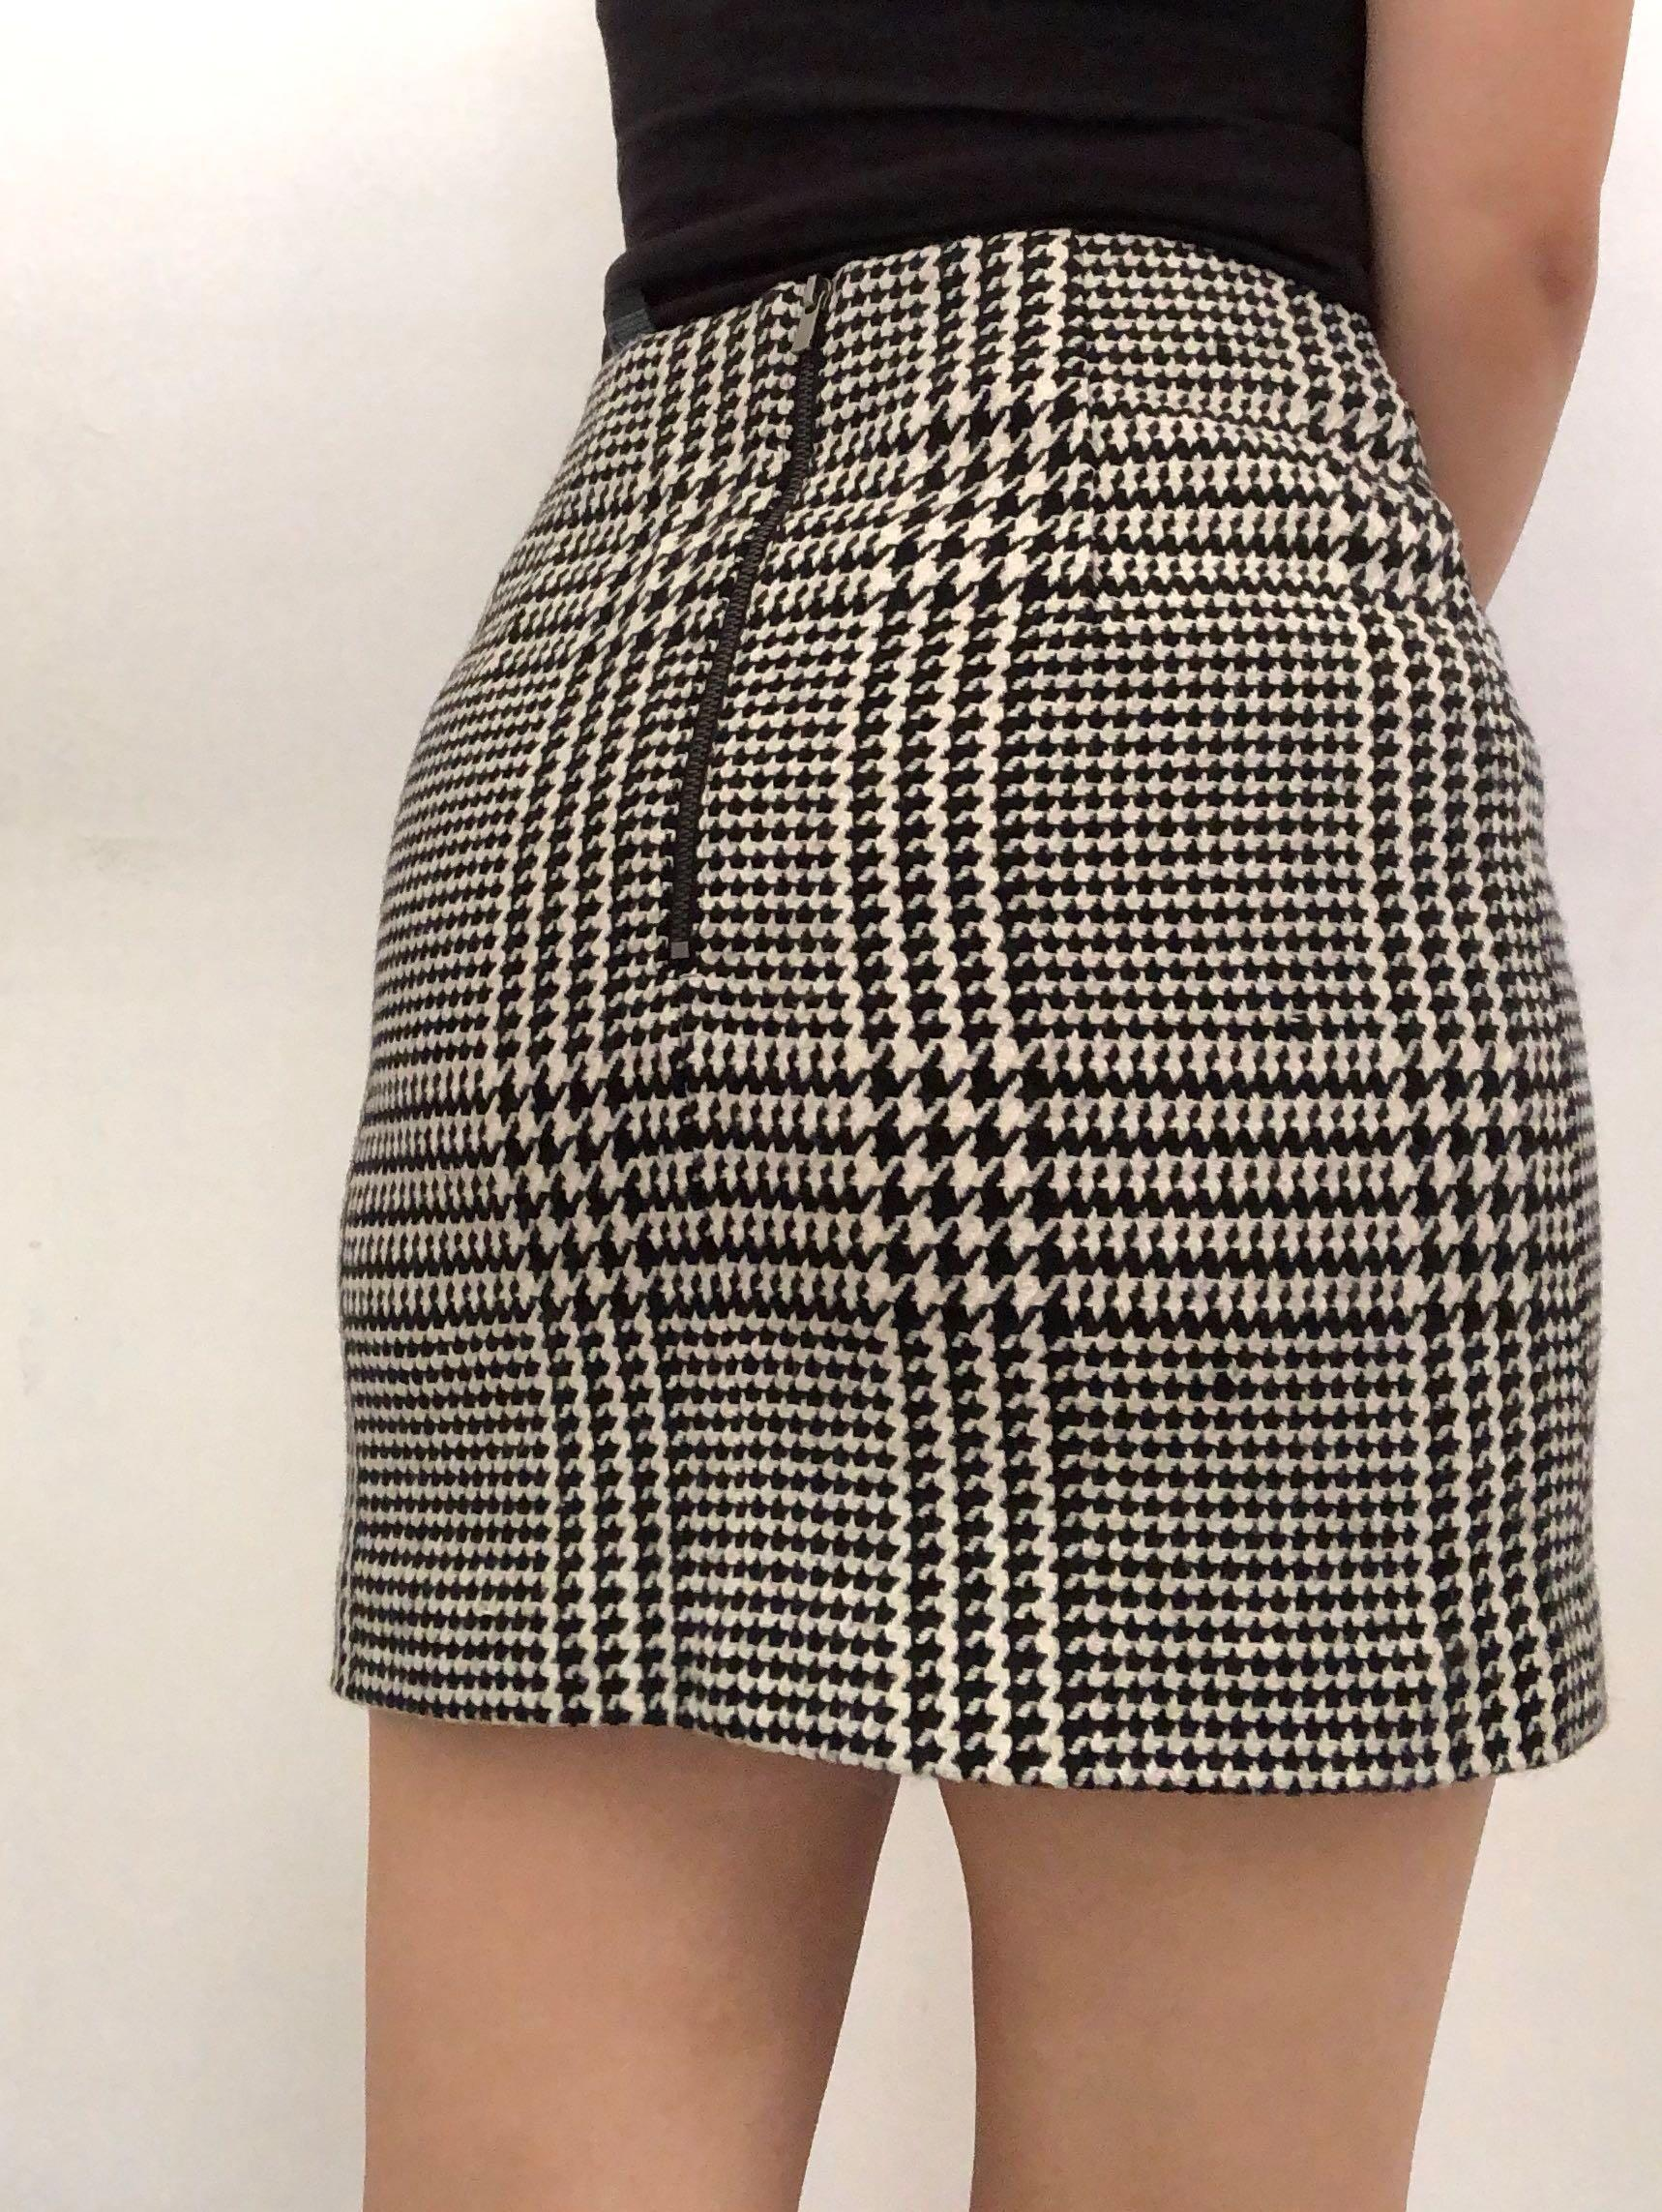 H&M Dogtooth Pattern High Waisted Mini Skirt Size 6